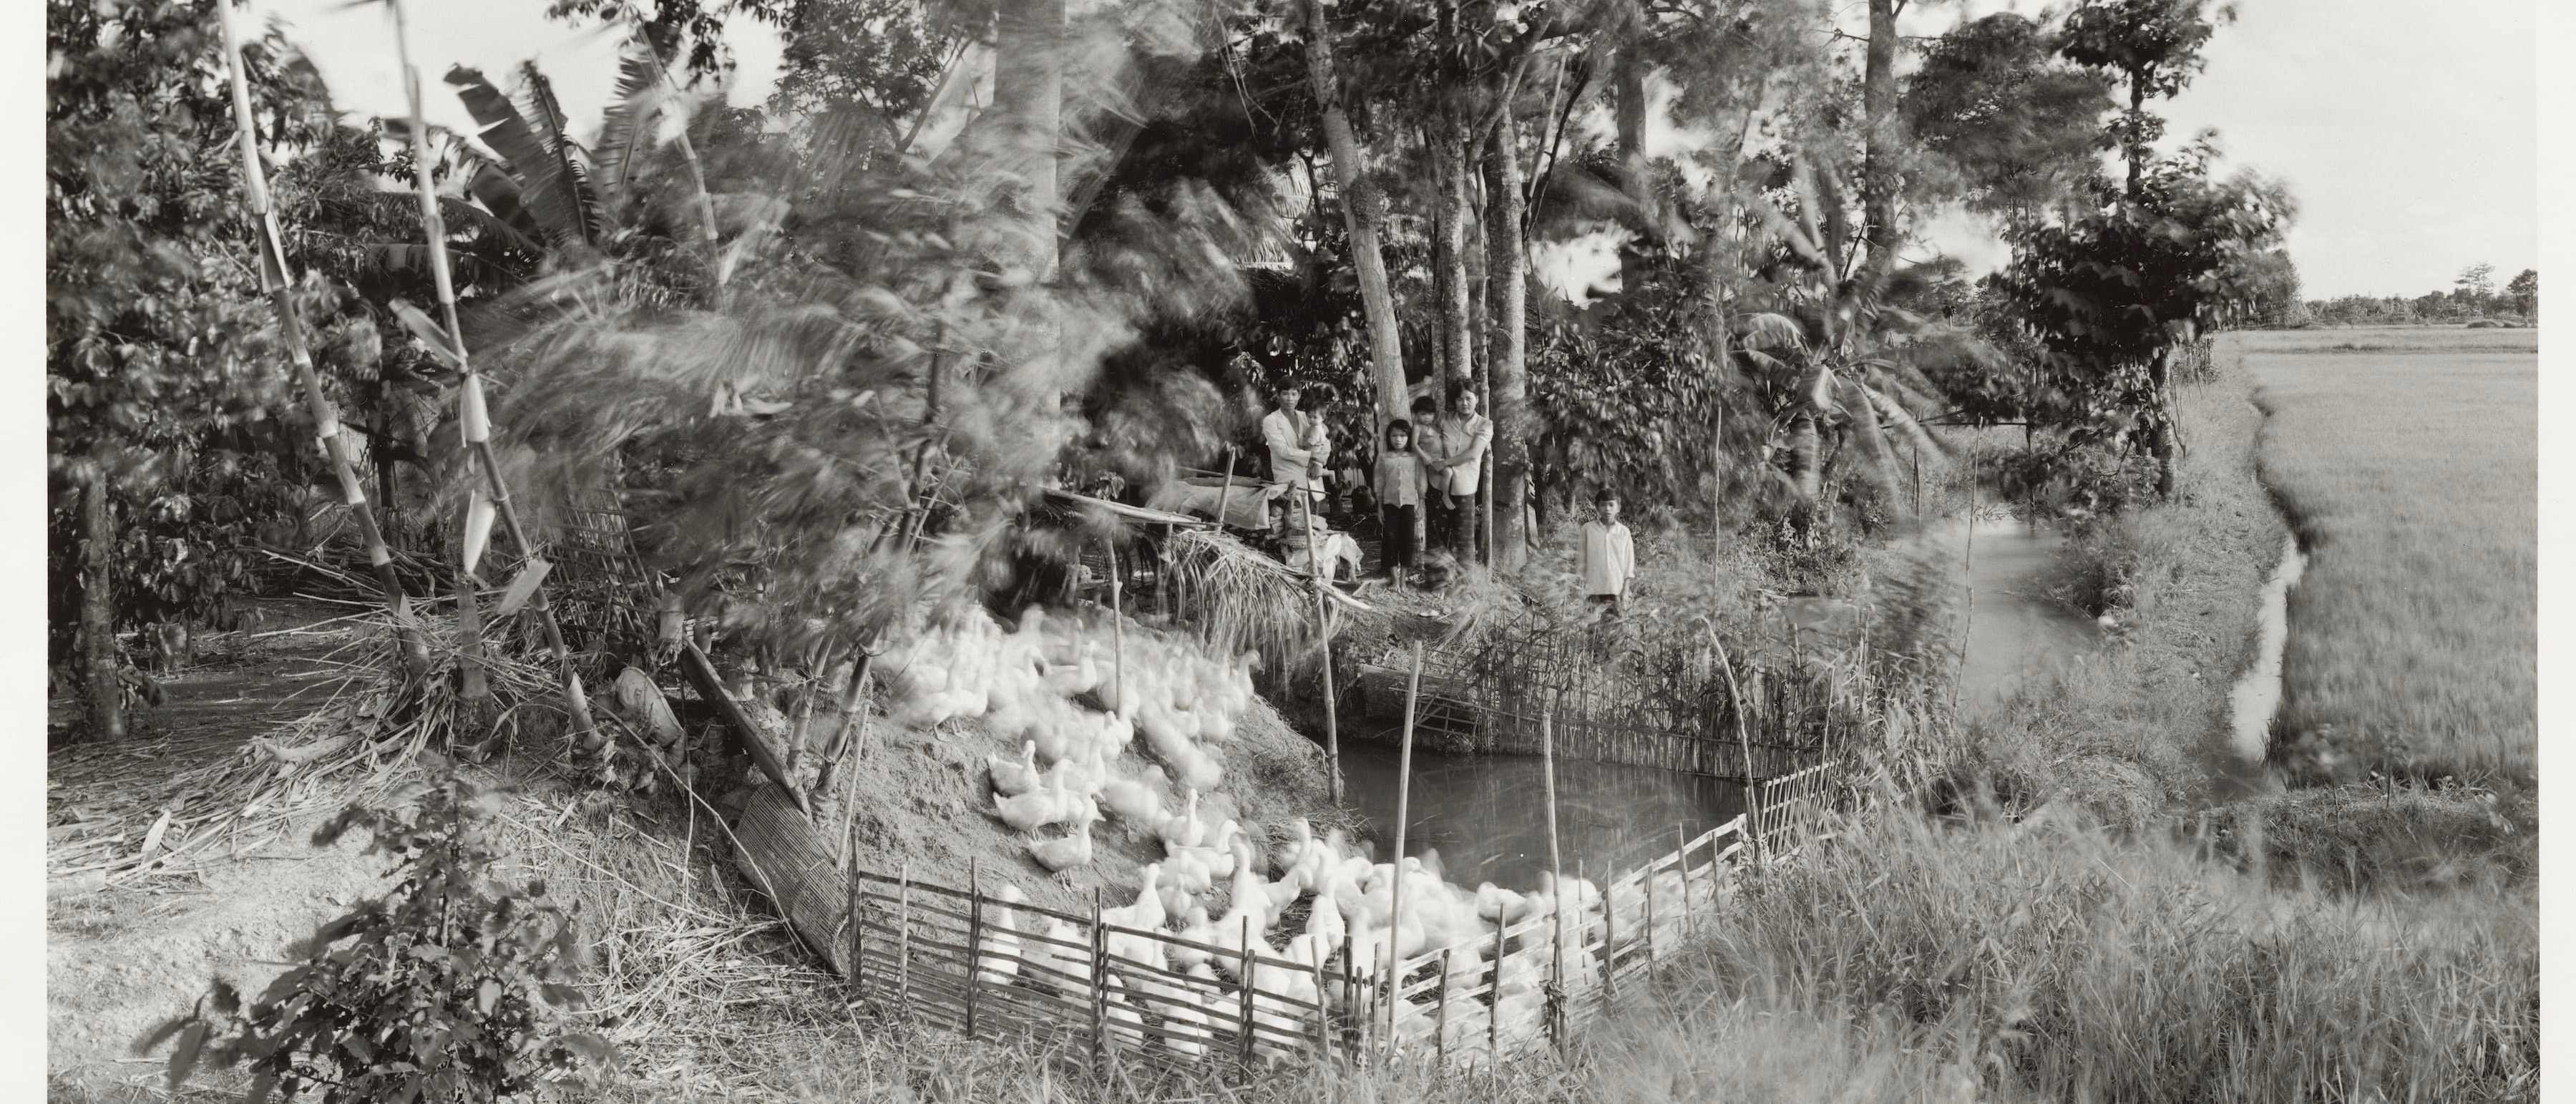 Black and white photograph of a family standing in a grove of trees; in front of them is a fenced pond, with many ducks in and near it